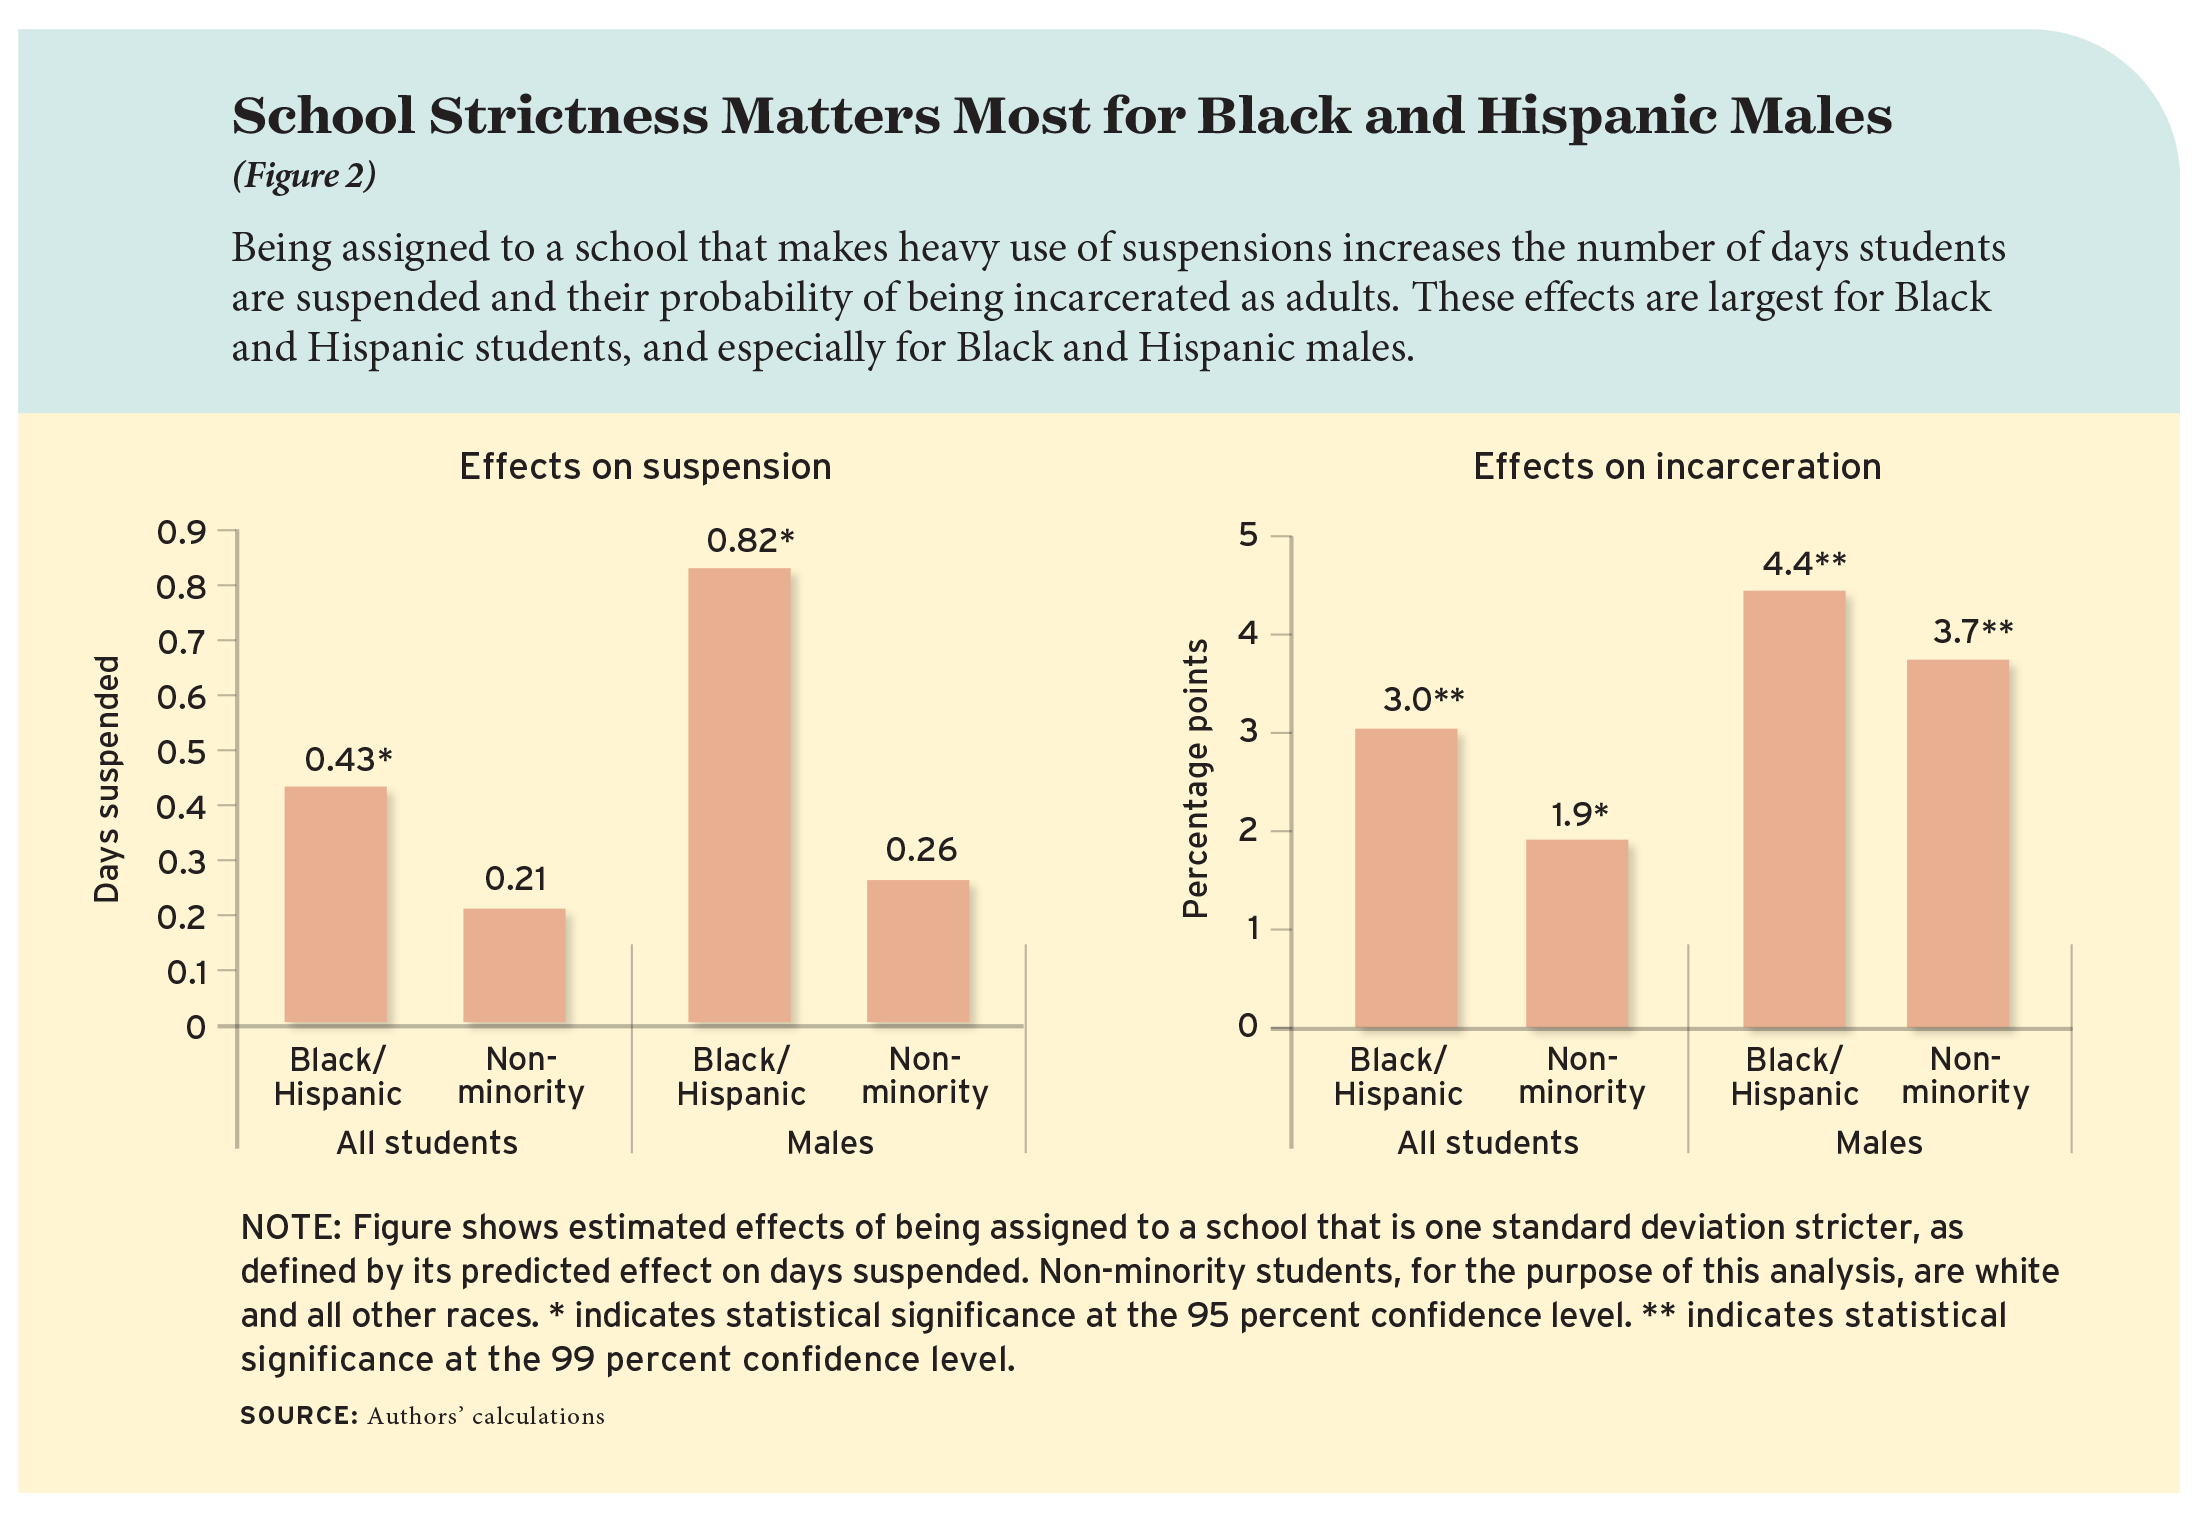 Figure 2: School Strictness Matters Most for Black and Hispanic Males